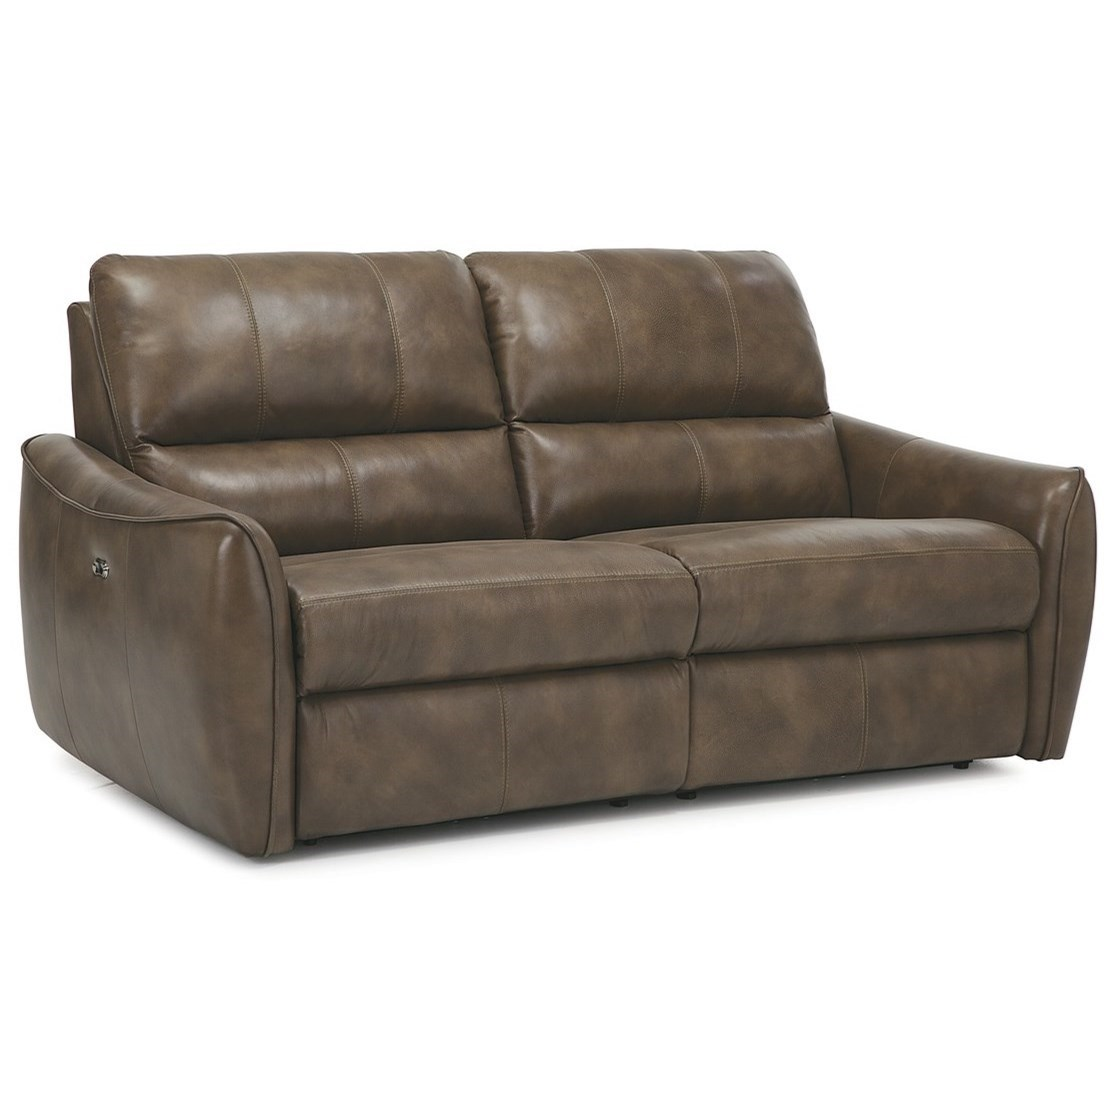 pause modern reclining sectional sofa by palliser standard cushion dimensions arlo contemporary recliner with tapered arms